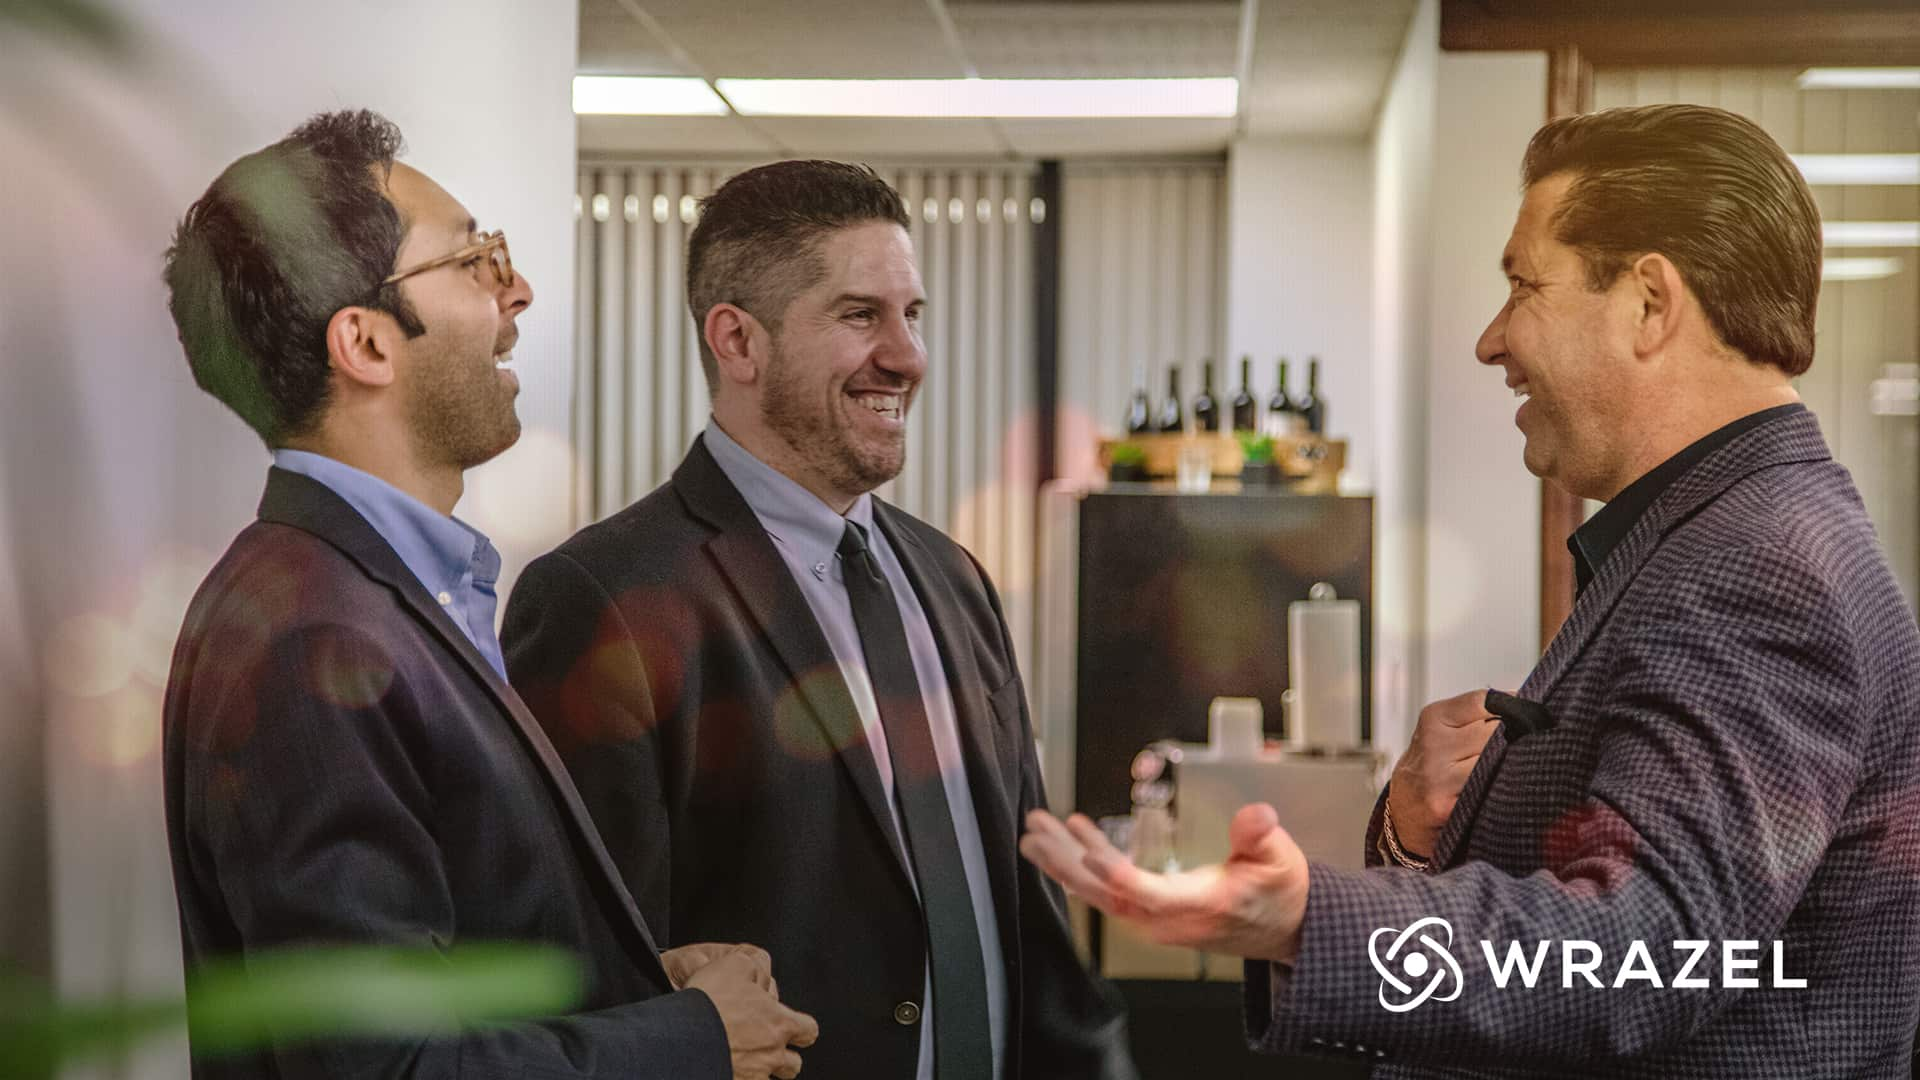 Wrazel Events: B2B Cannabis Professionals Networking Mixer